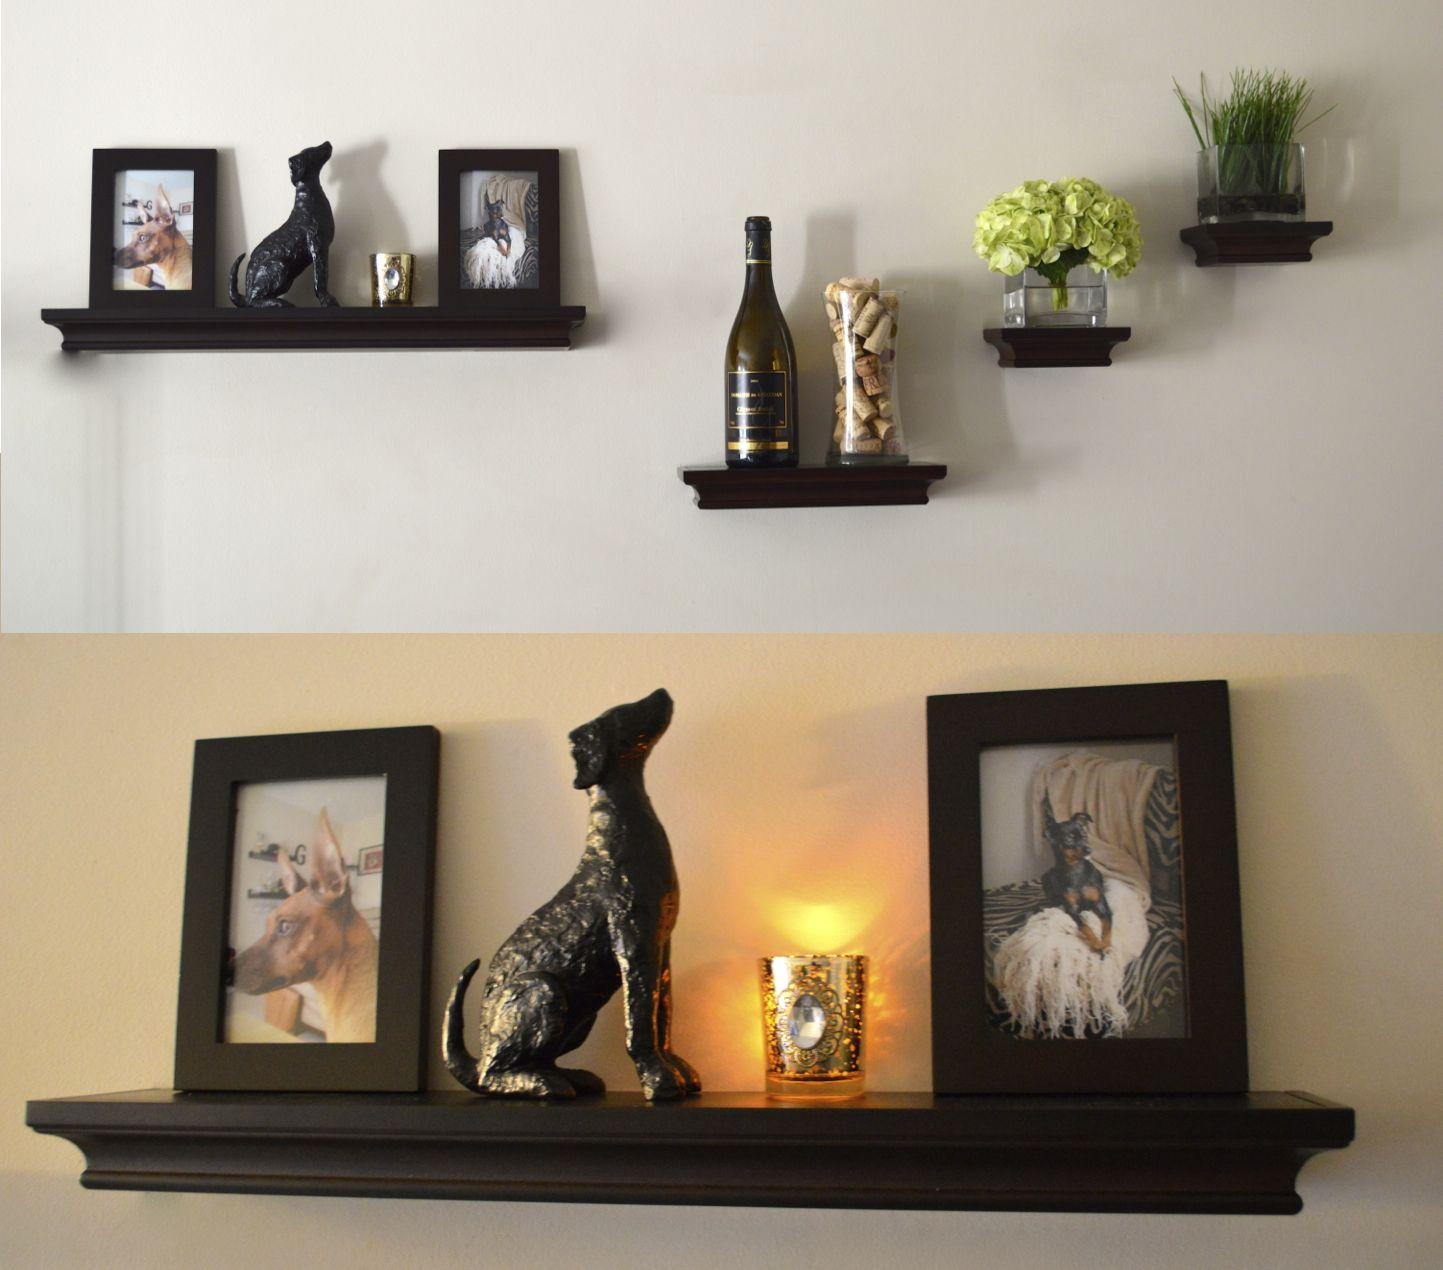 beauteous black wooden floating shelves idea with classy classic design for display shelves